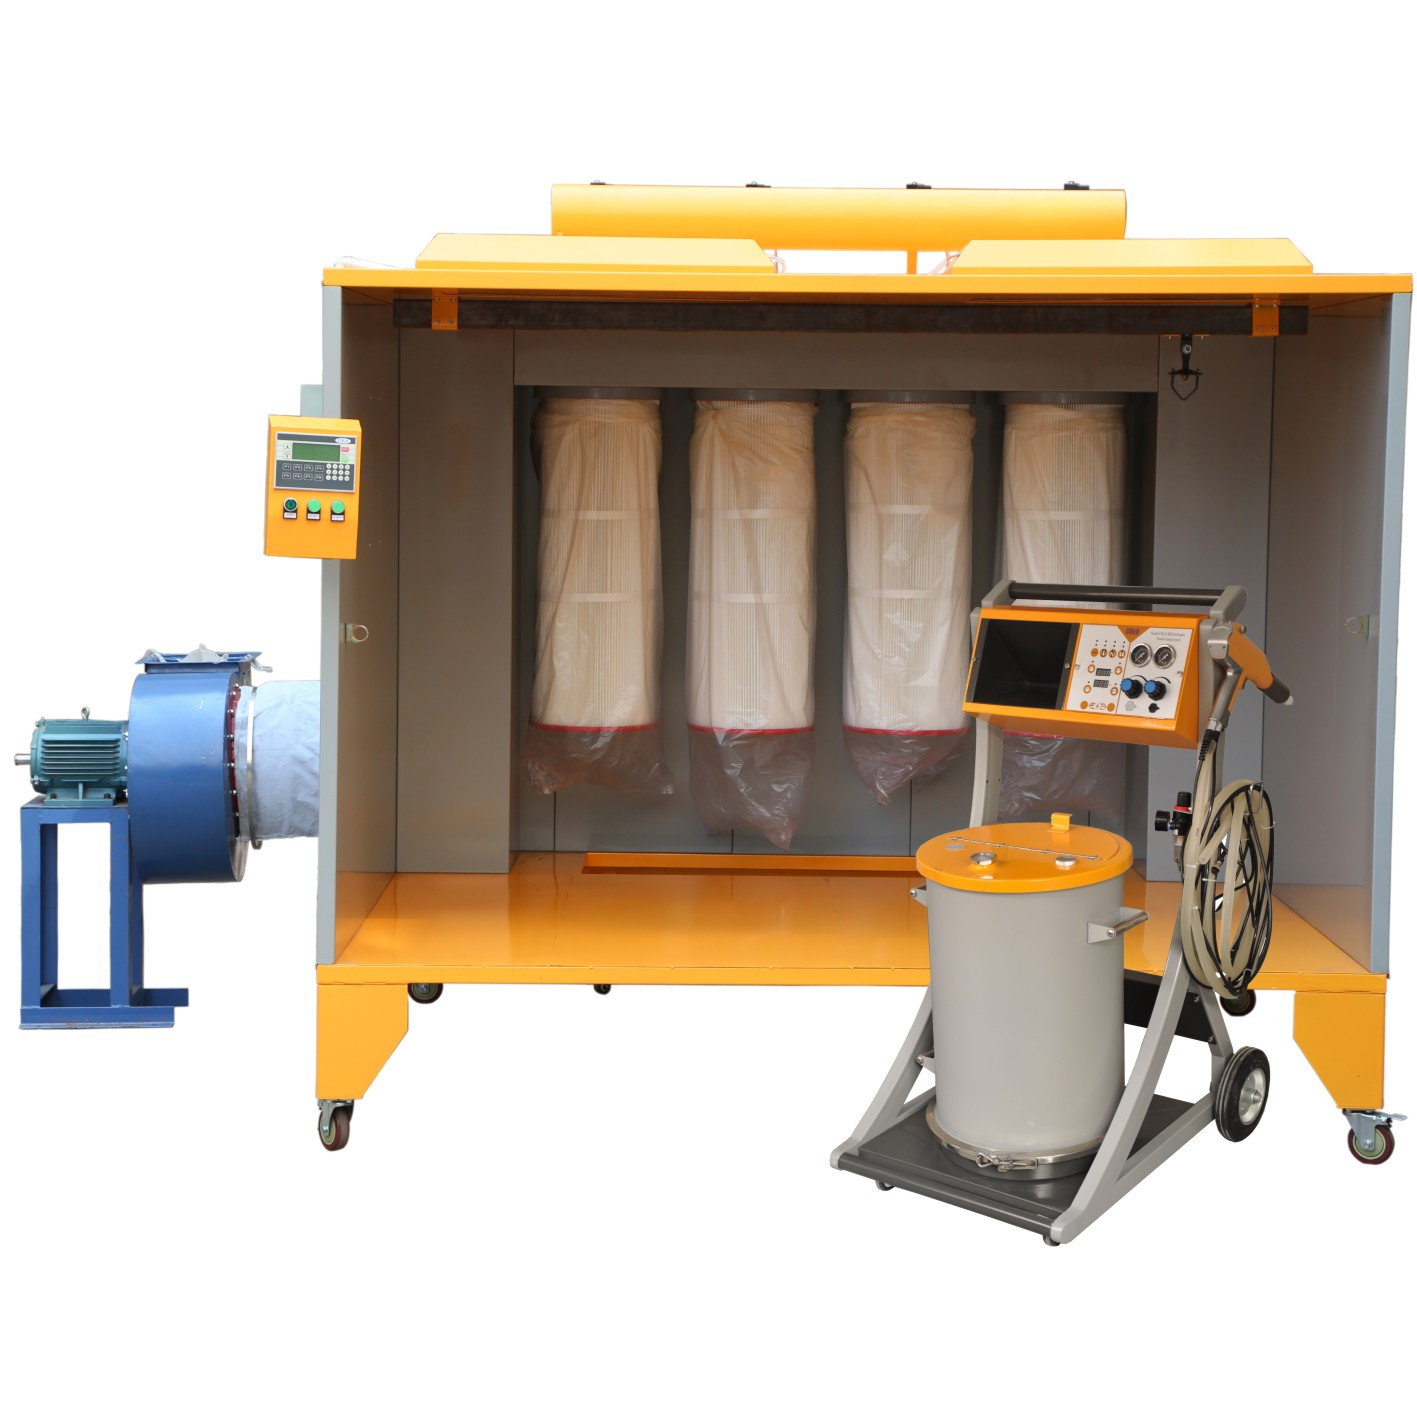 High Pressure Spray Booth : Electrostatic manual powder coating booth with